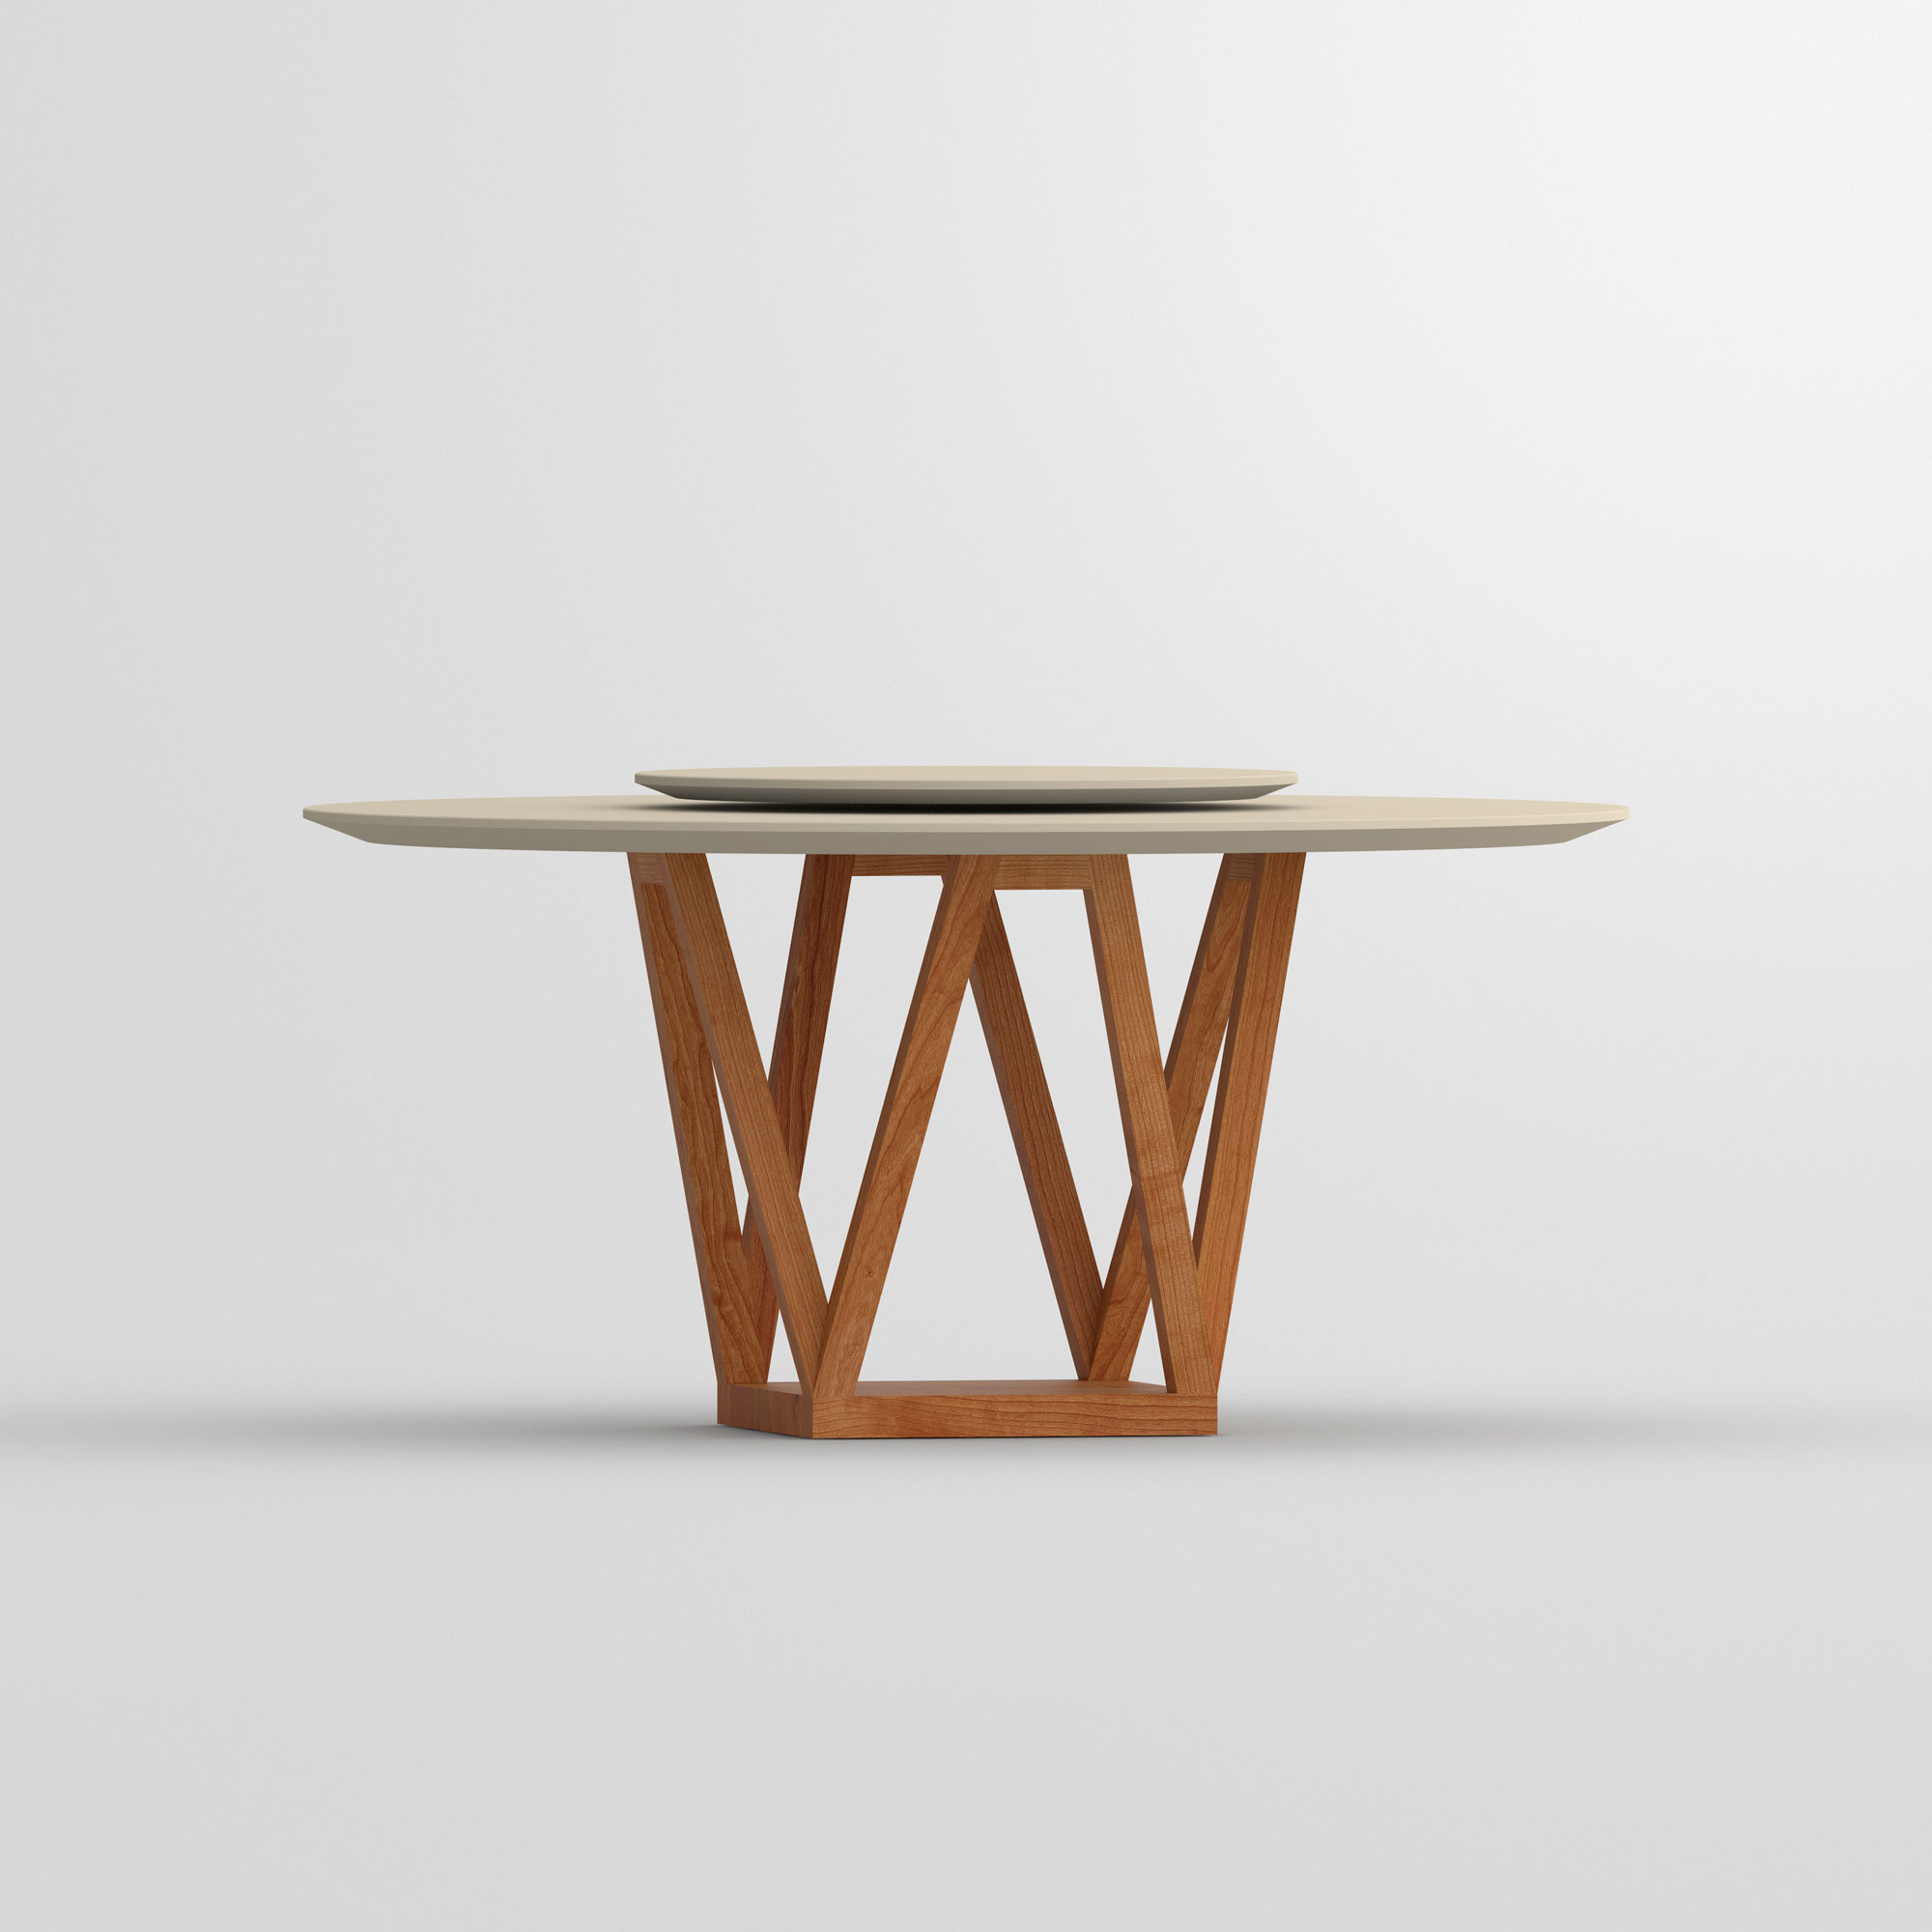 Linoleum Design Table CREO LINO cam2 custom made in solid wood by vitamin design